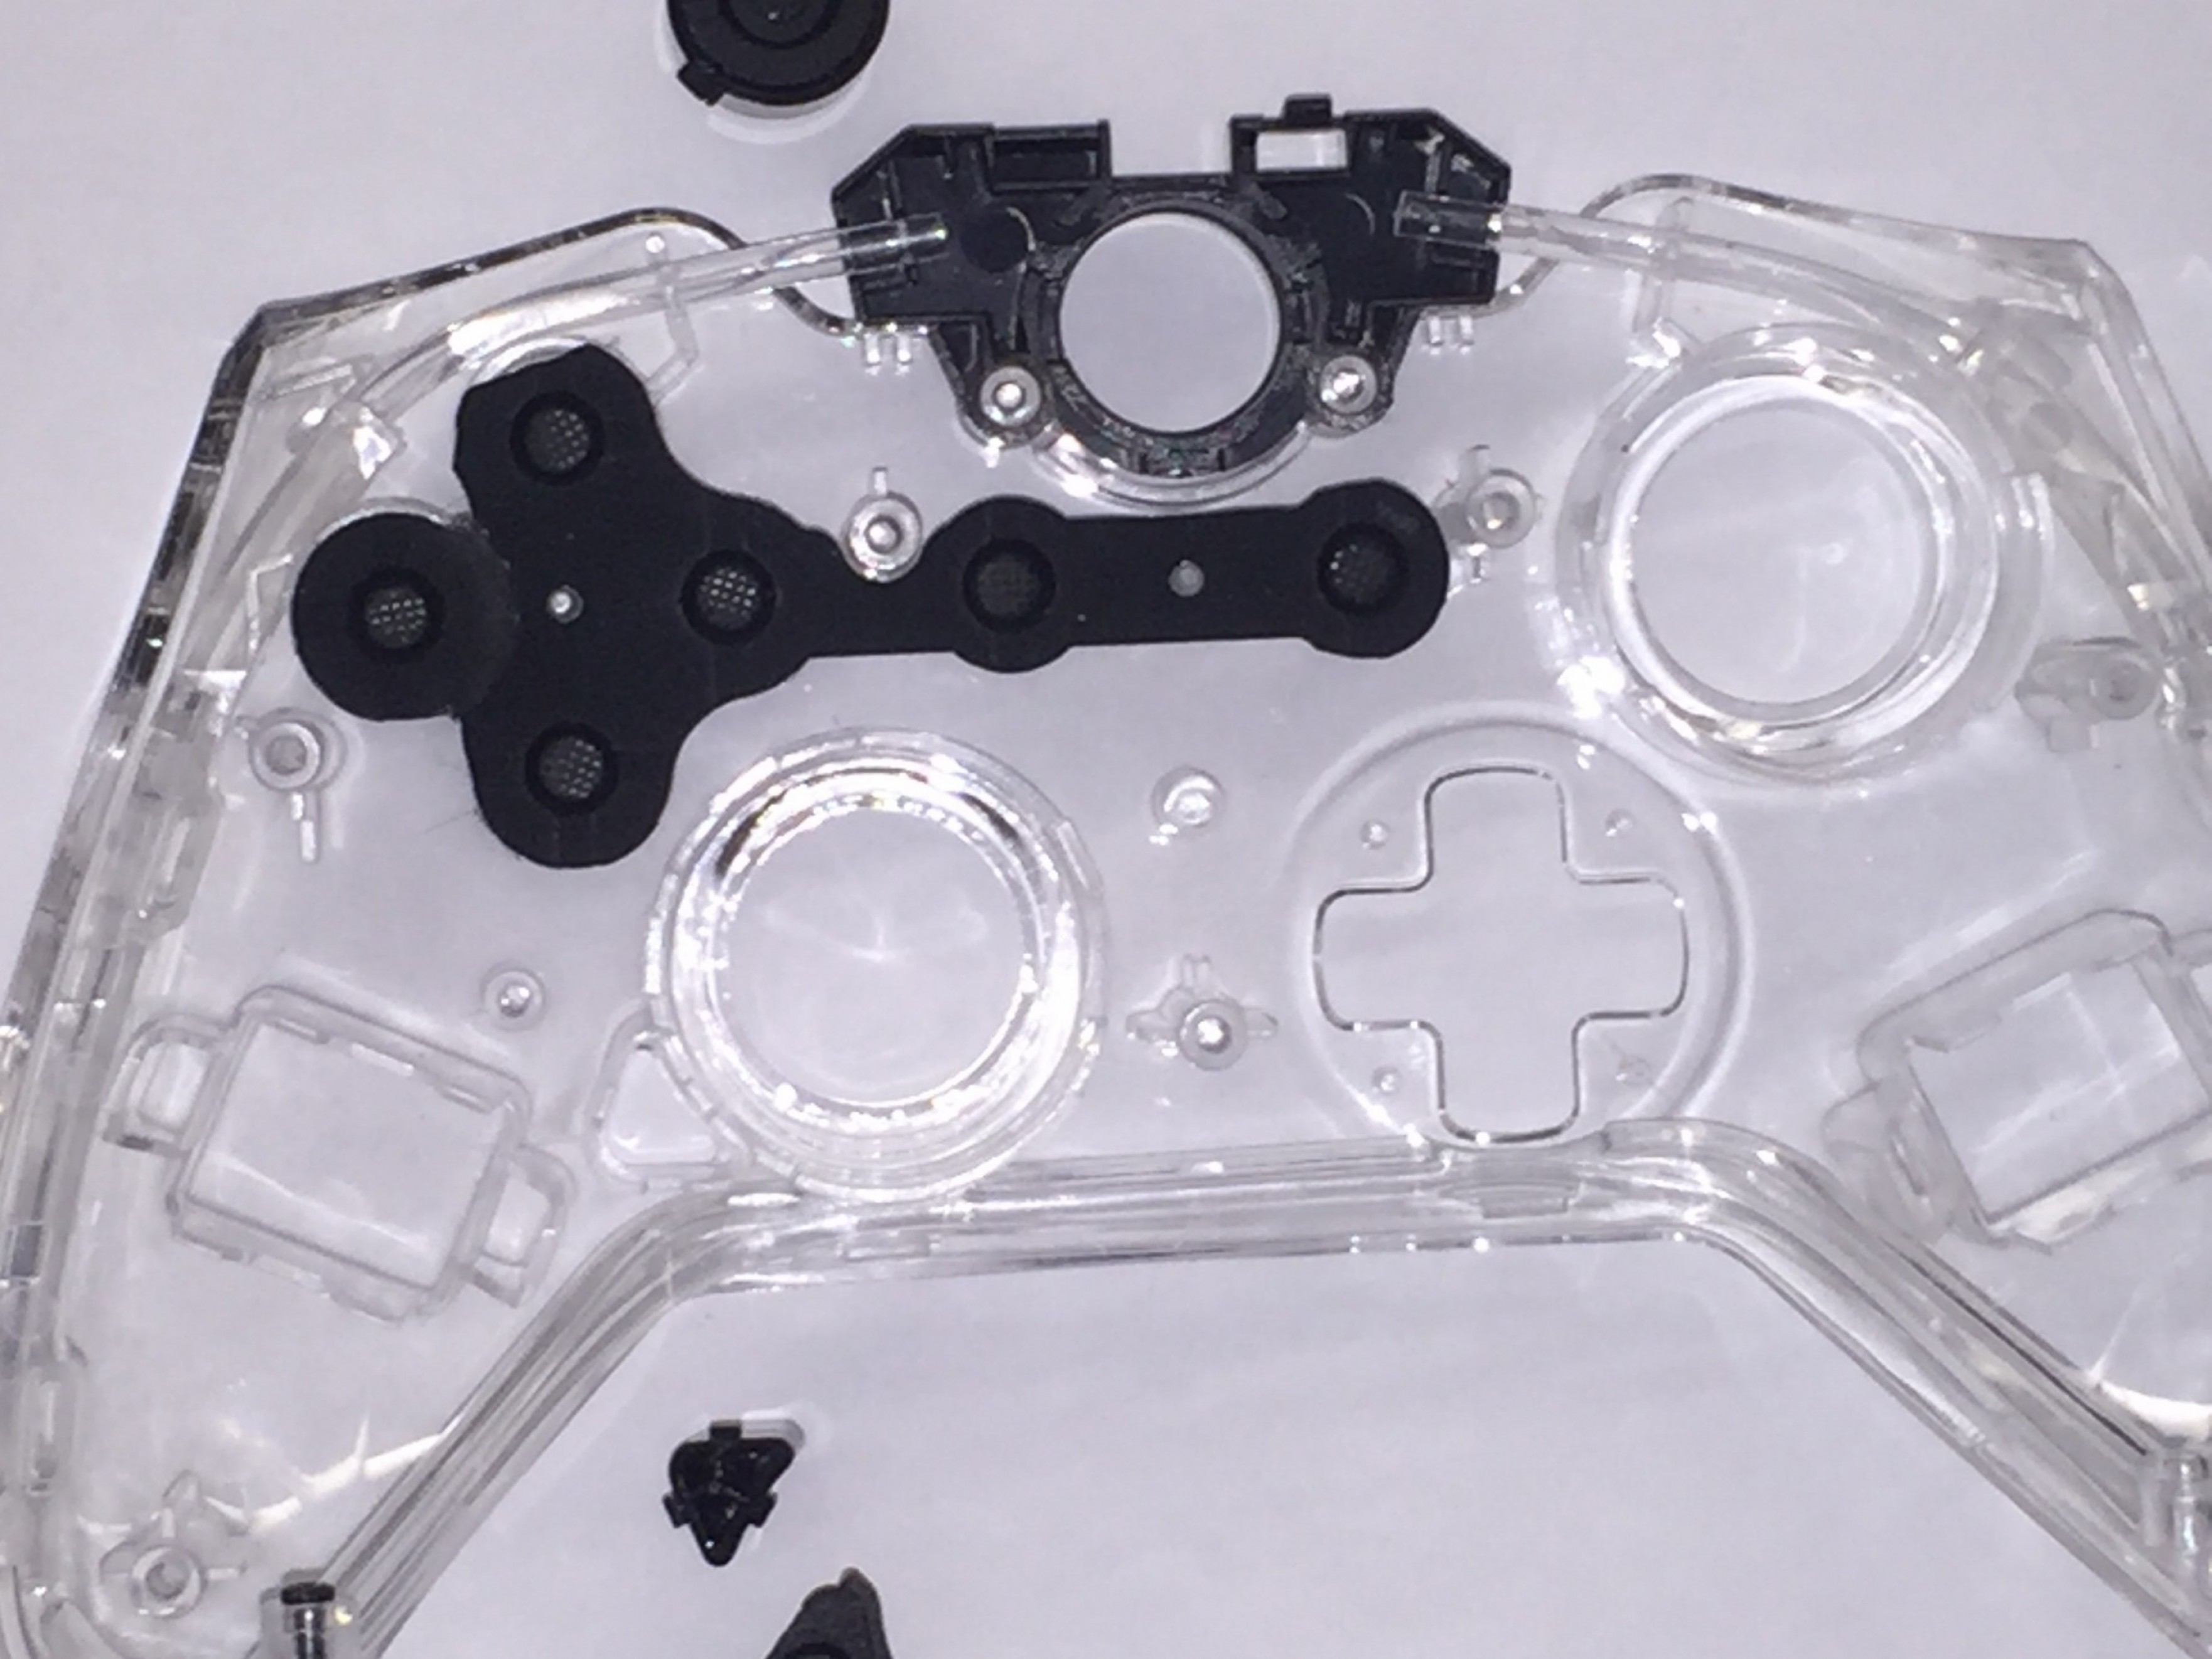 Xbox Game Controller Vector: Does The Xbox One Afterglow Controller Use The Same Conductive Rubber Button Con